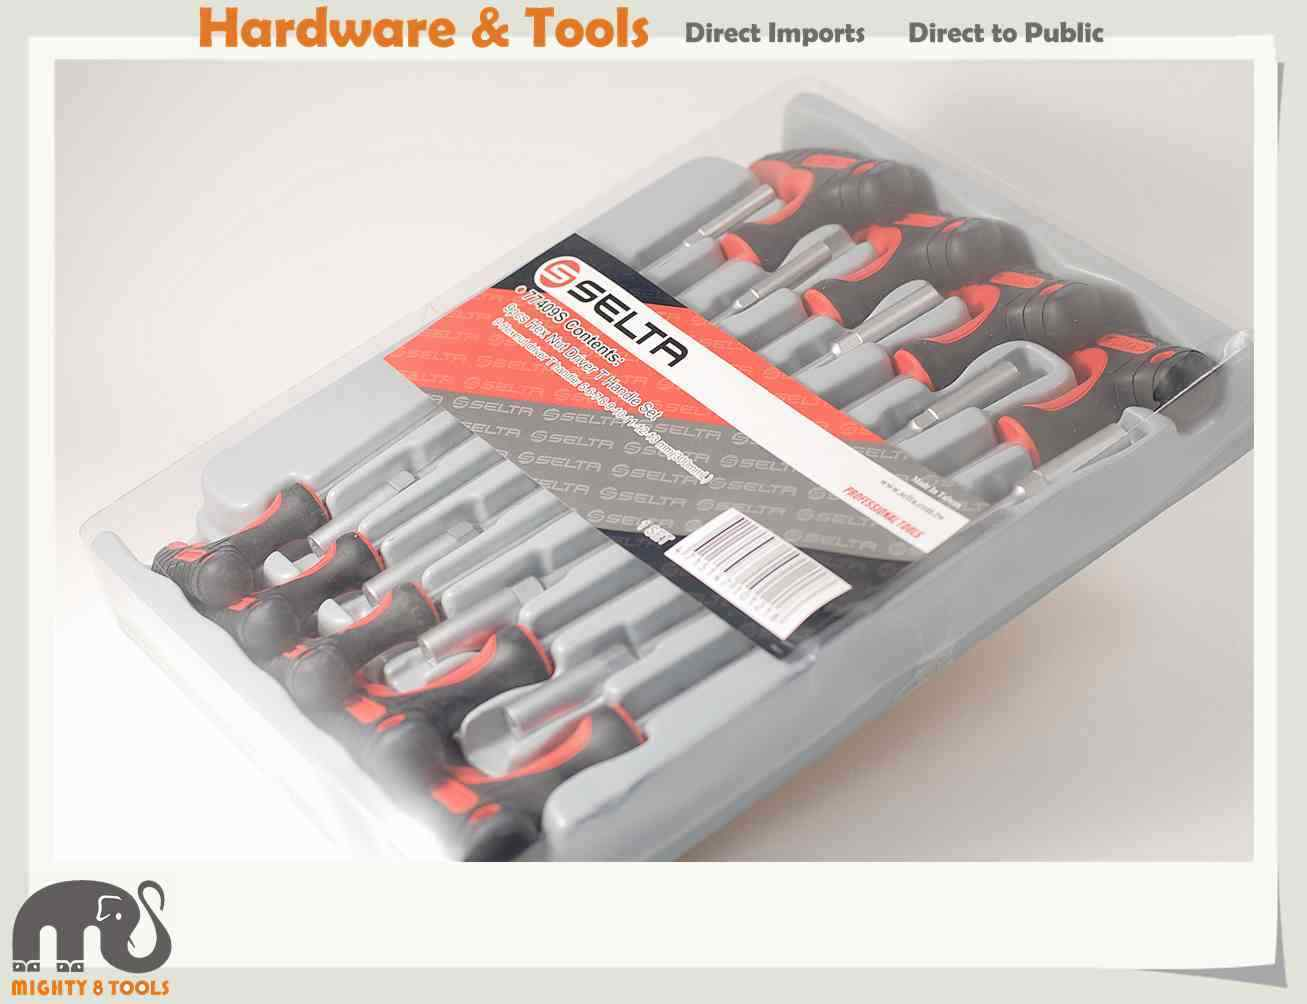 Selta Taiwan Cr-V 9pc Hex Nut Driver T Handle Set w Tray:5-6-7-8-9-10-11-12-13mm